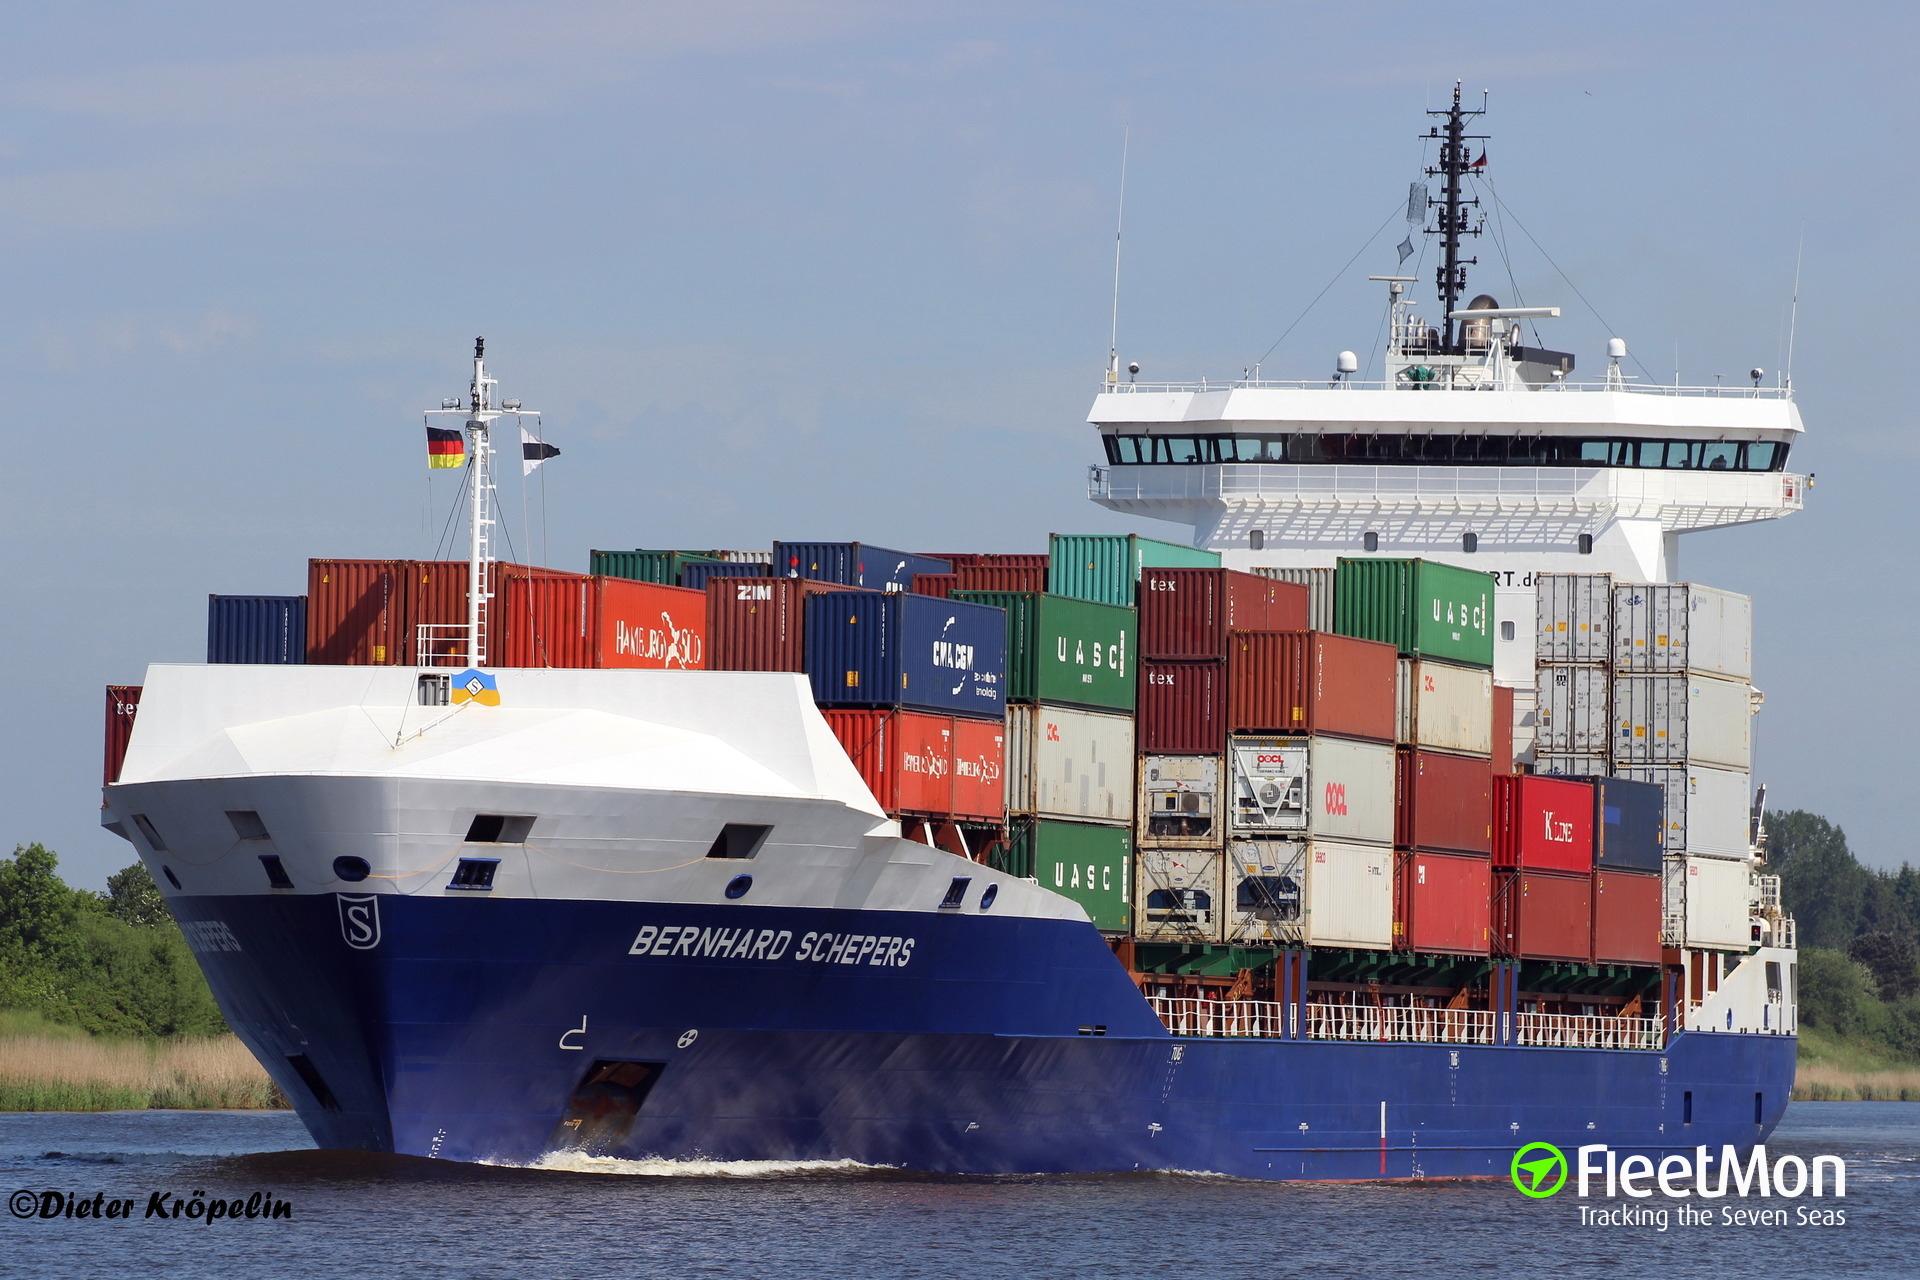 Bernhard Schepers grounding in Kiel Canal